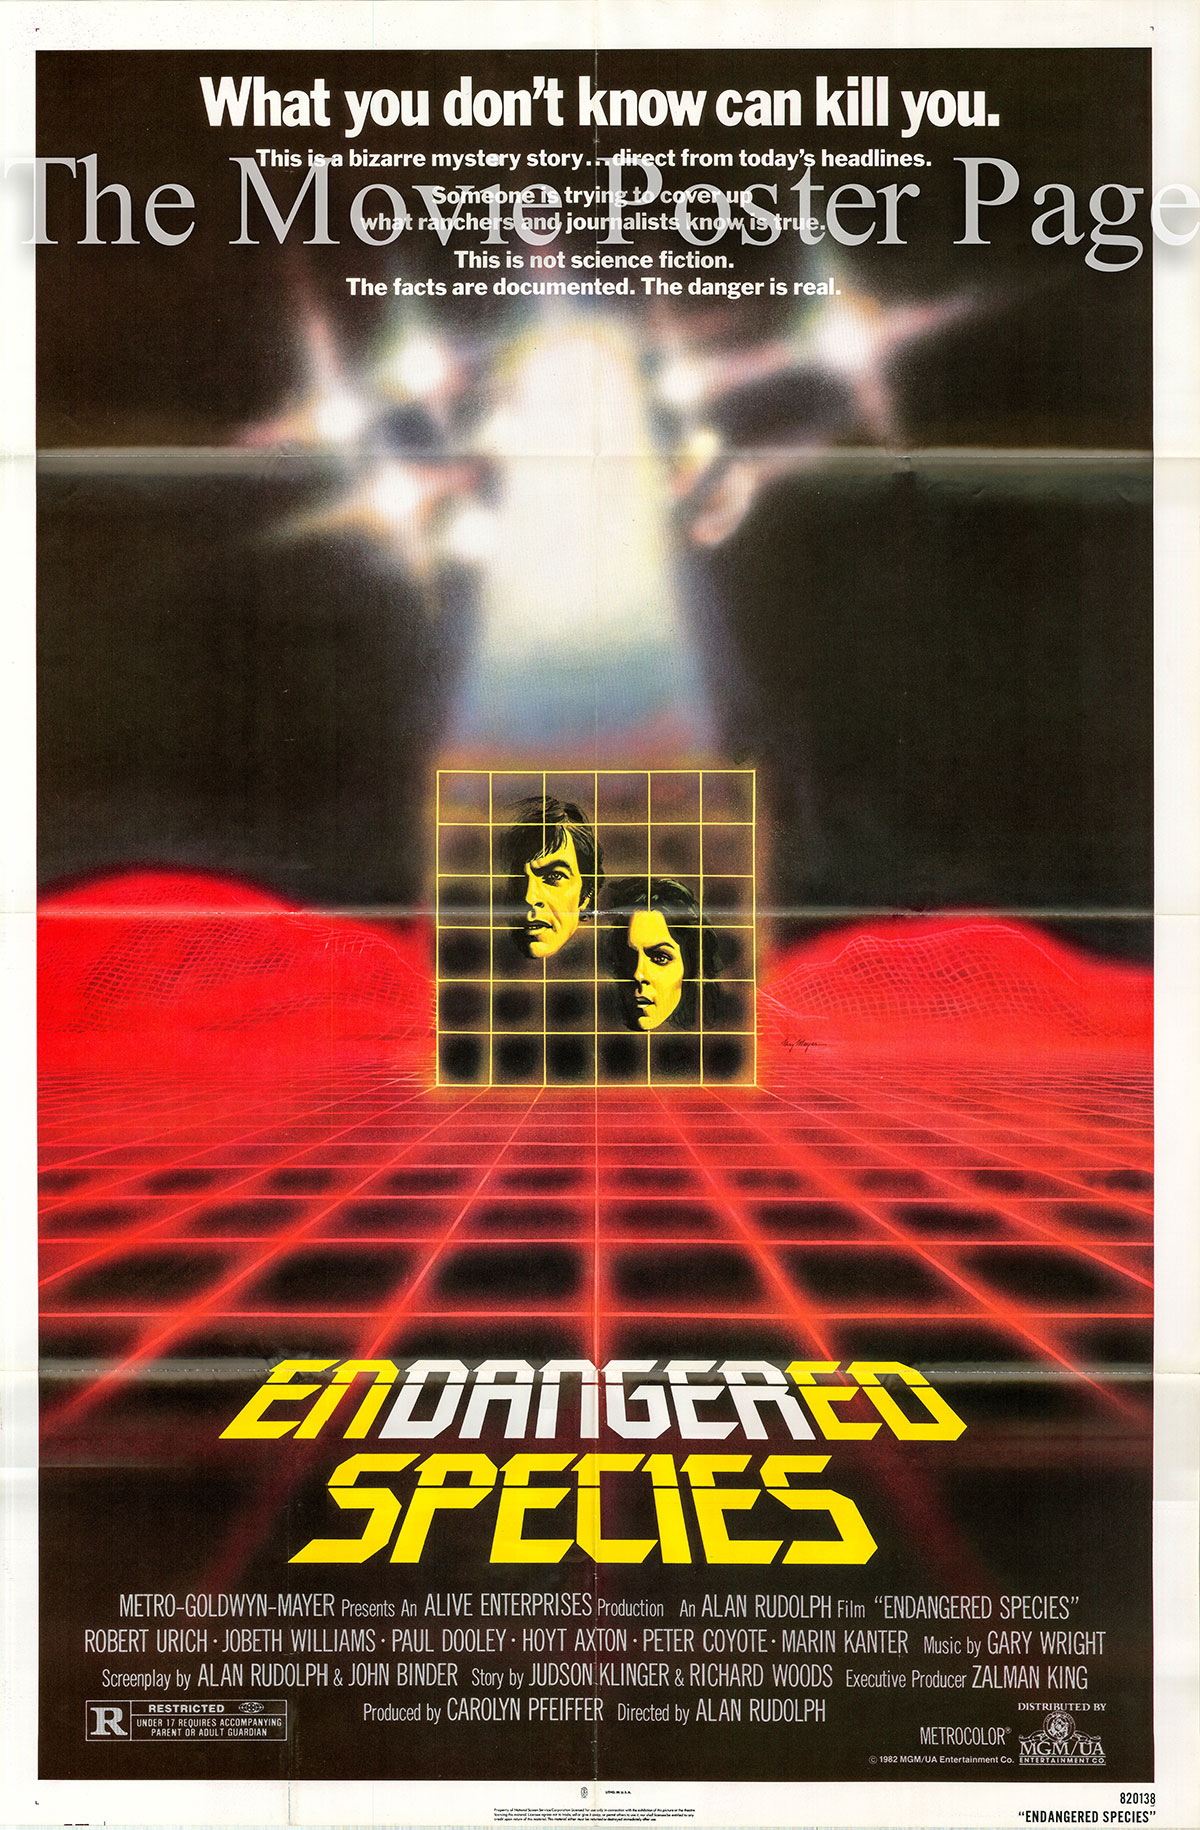 Pictured is a US one-sheet poster for the 1982 Alan Rudolph film Endangered Species starringRobert Urich as Ruben Castle.